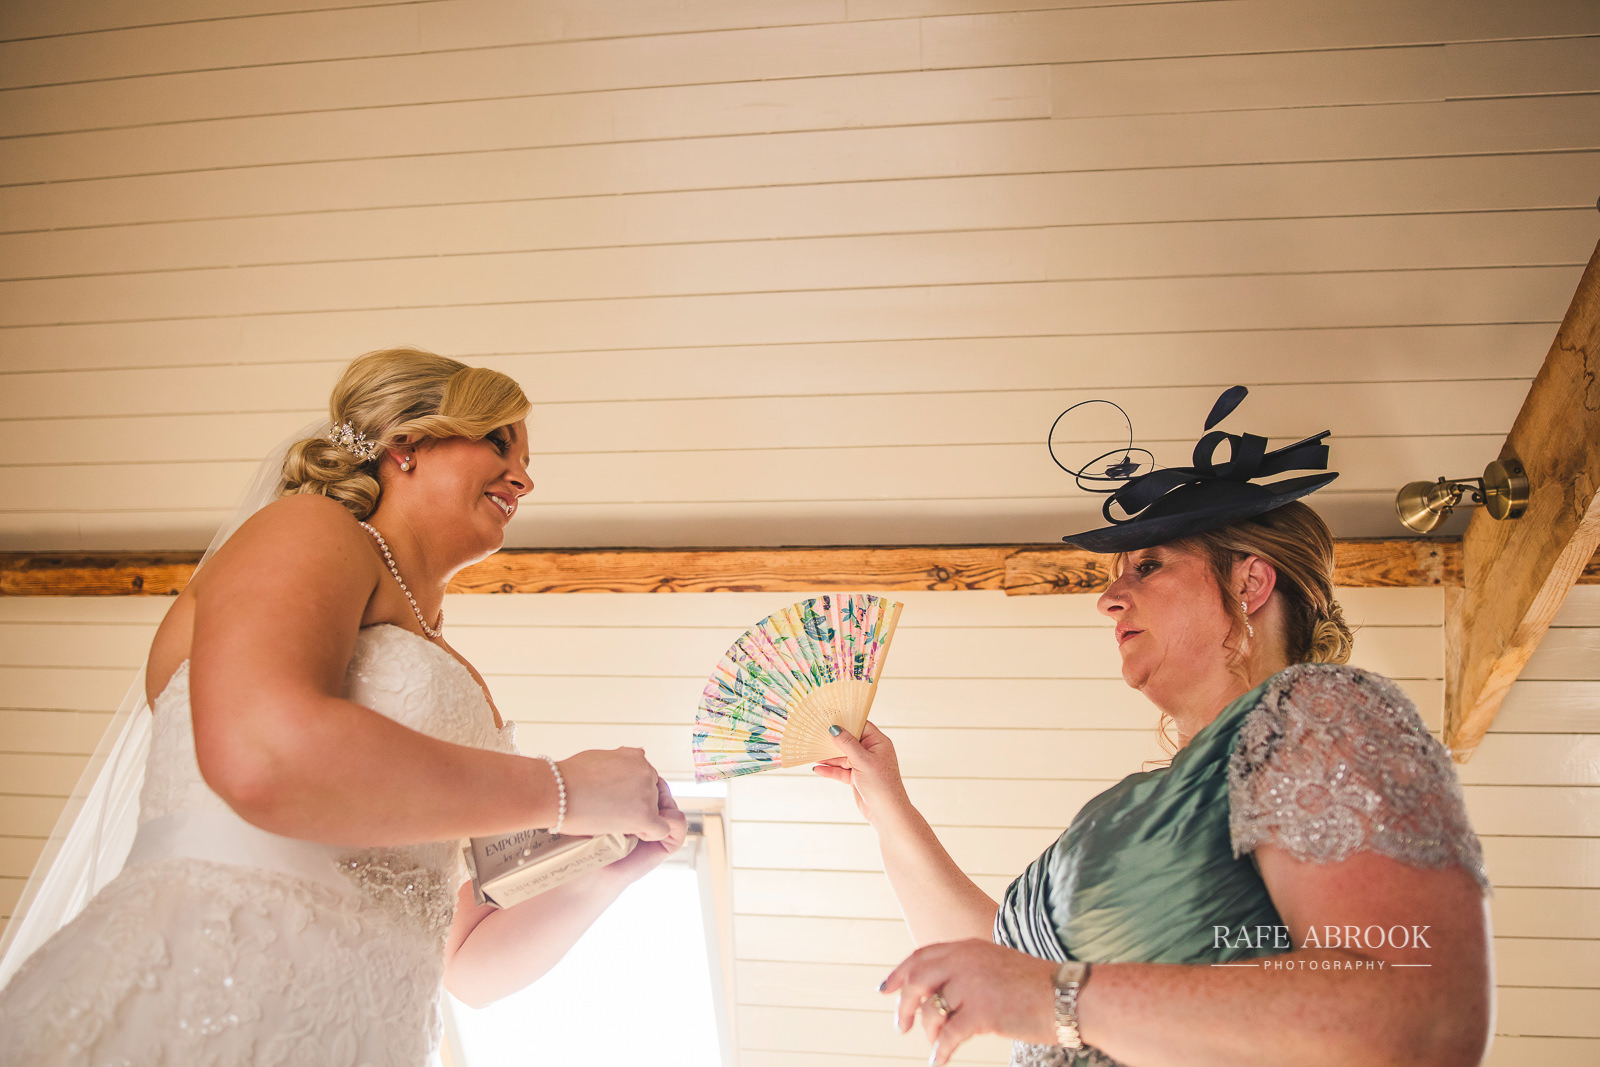 south farm wedding royston hertfordshire wedding photographer rafe abrook photography-1366.jpg